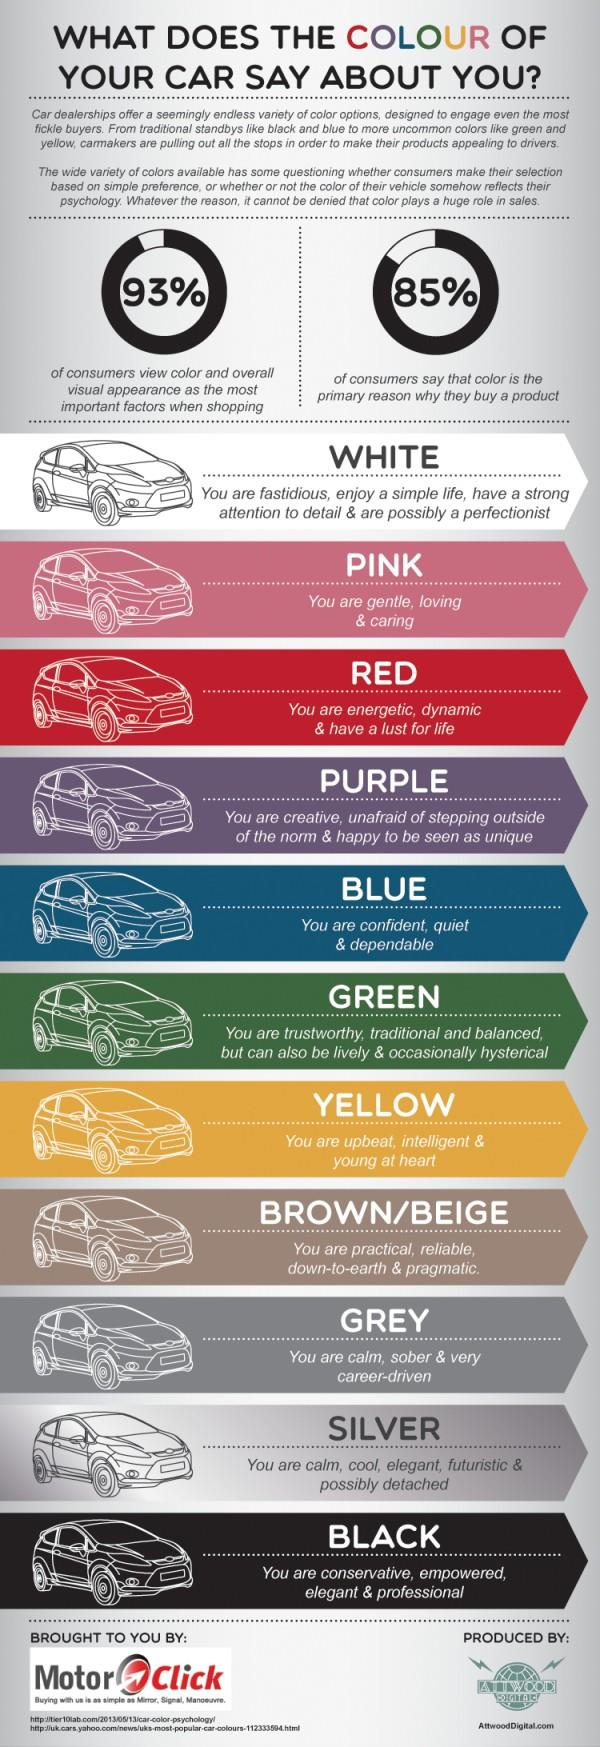 What does your Car Colour say about you?